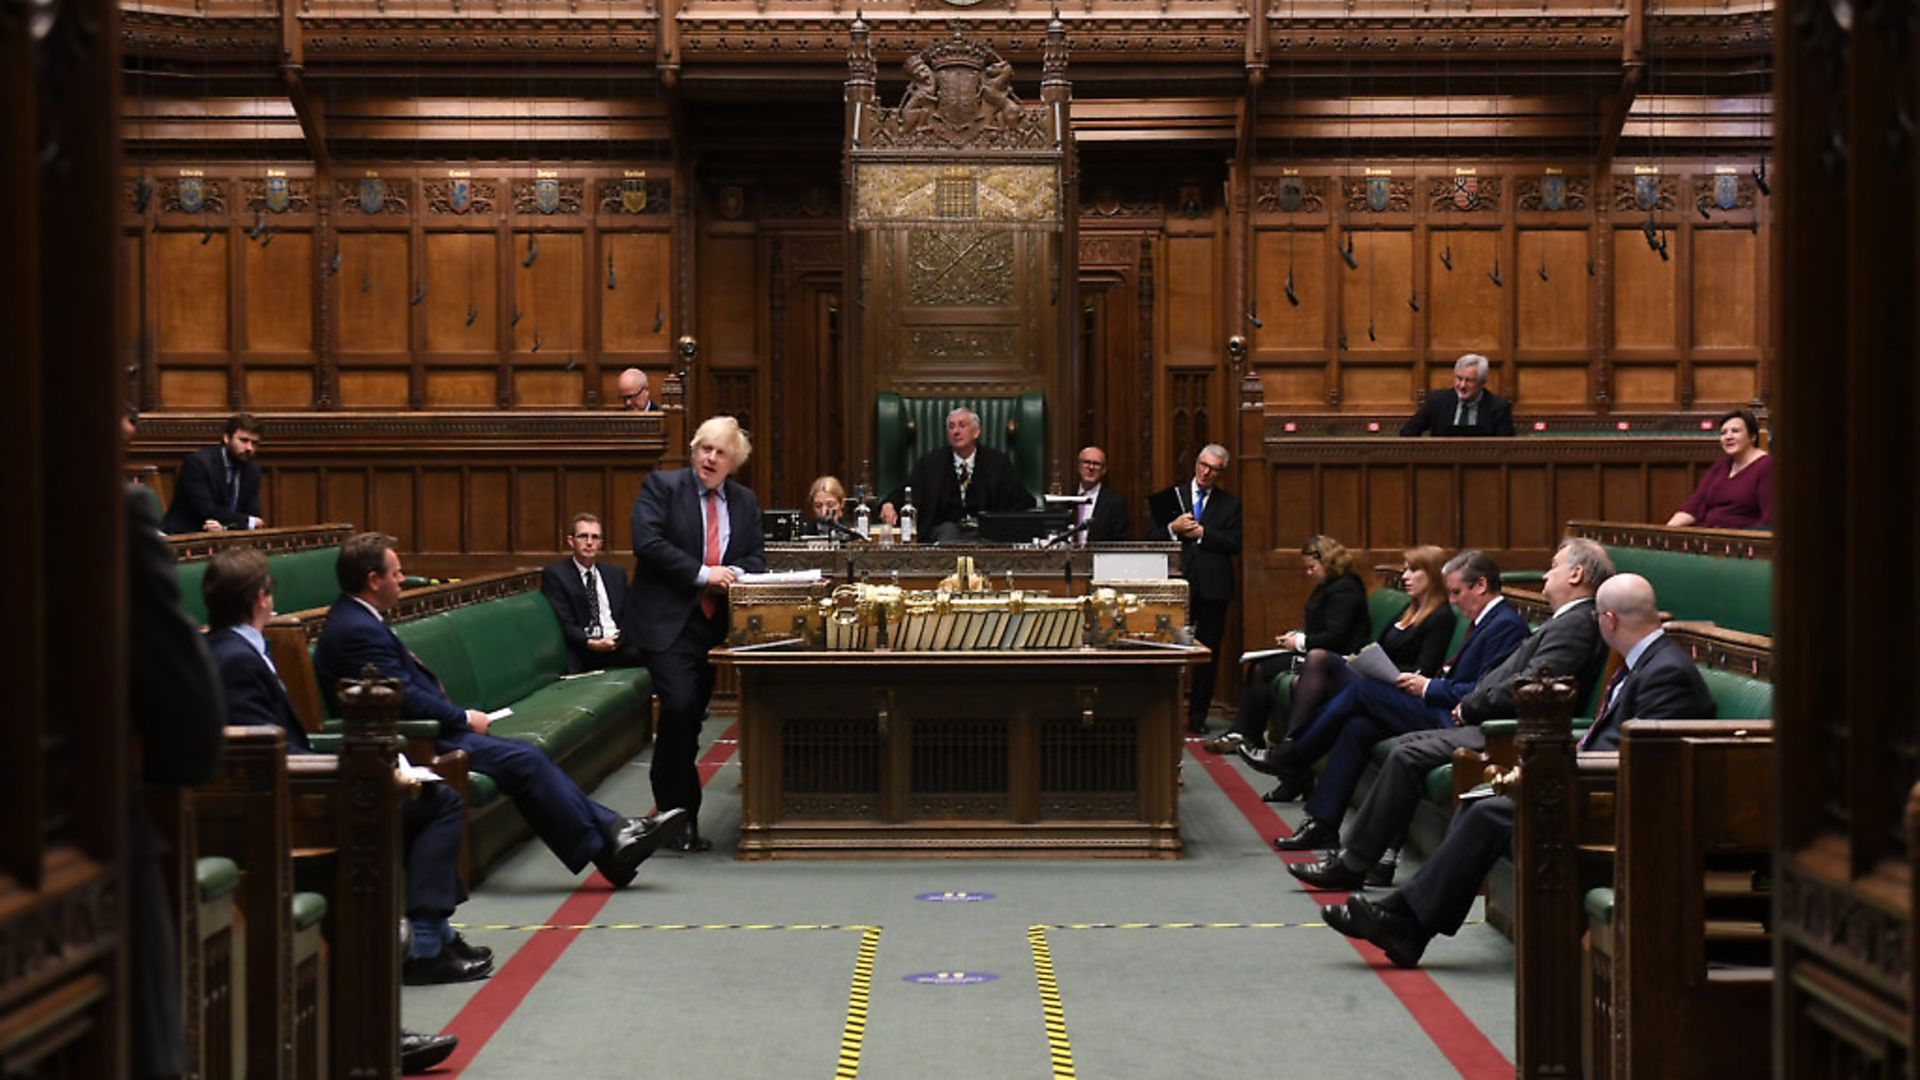 Boris Johnson at PMQs in the House of Commons. Photograph: Jessica Taylor/UK Parliament. - Credit: Archant